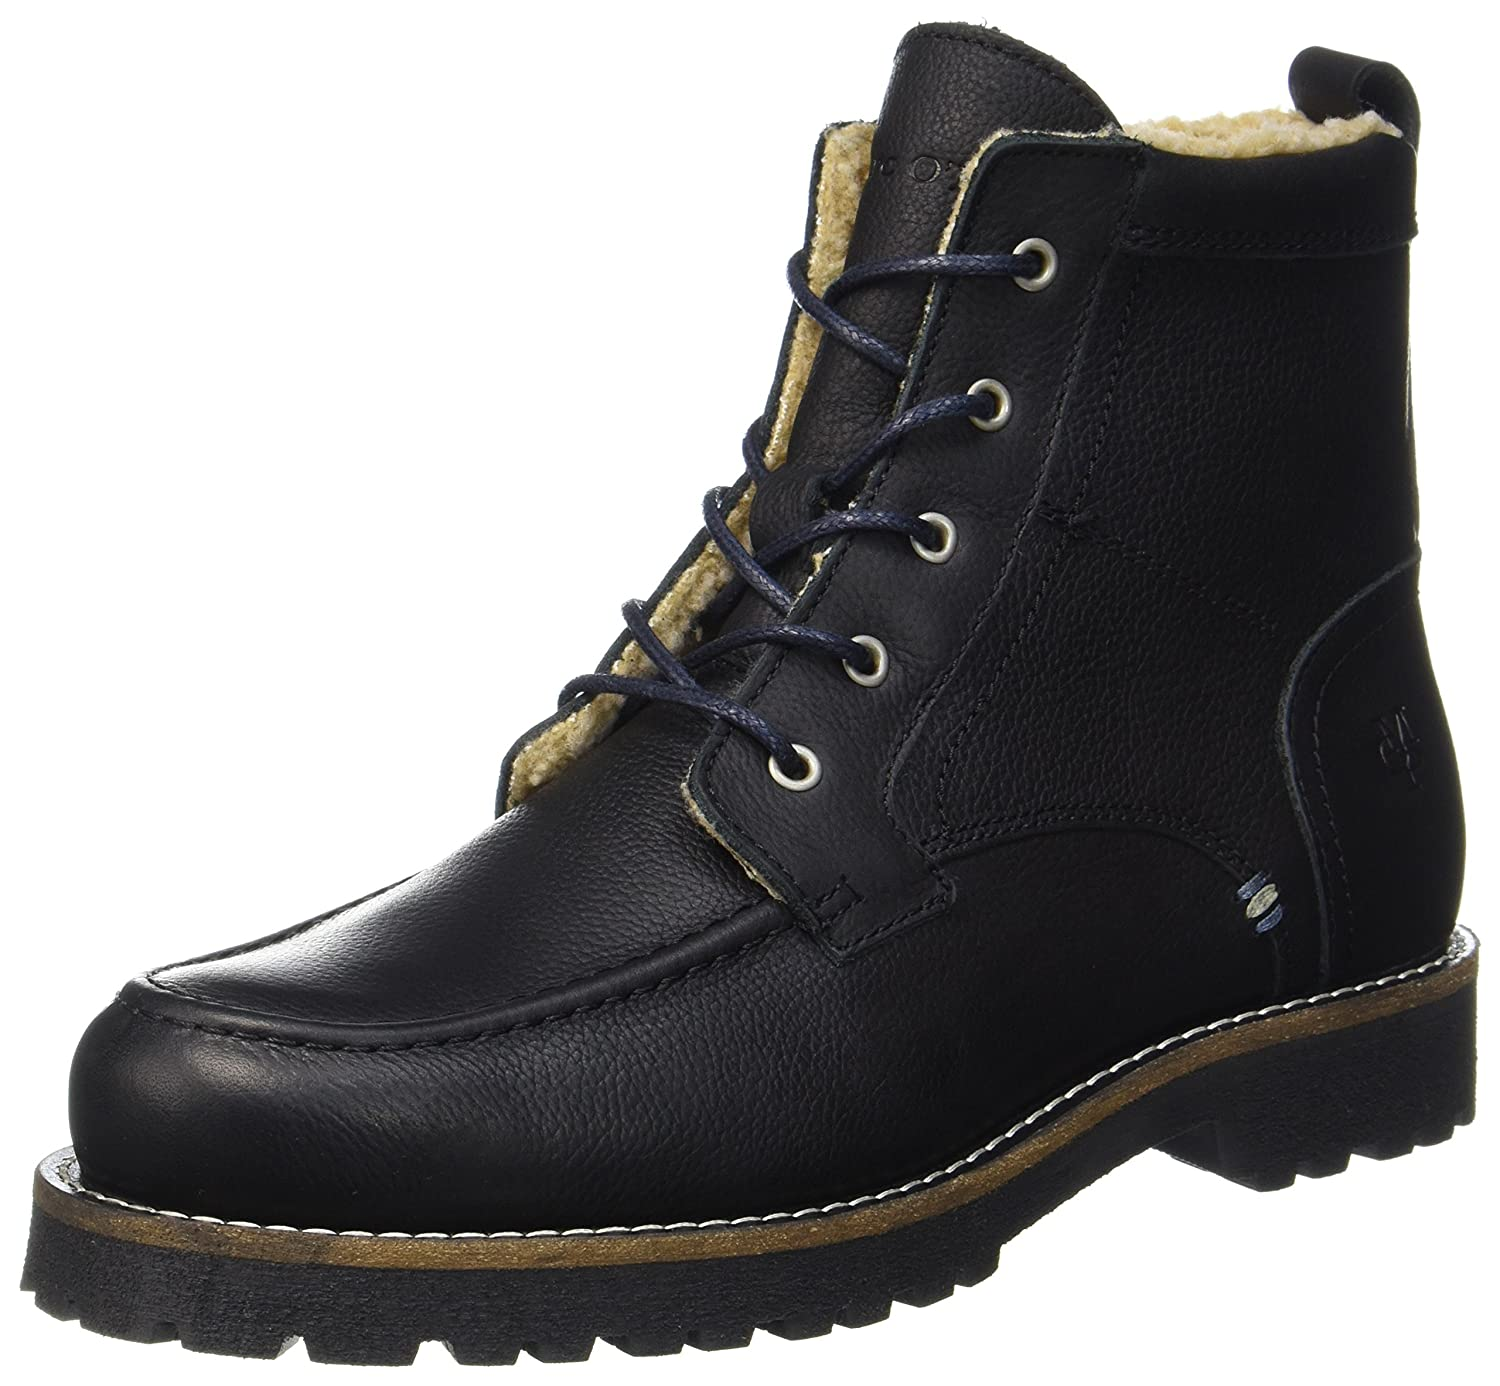 61020036303114 Lace Flatheel Bootie, Mens Warm-Lined Short-Shaft Boots and Bootees Marc O'Polo